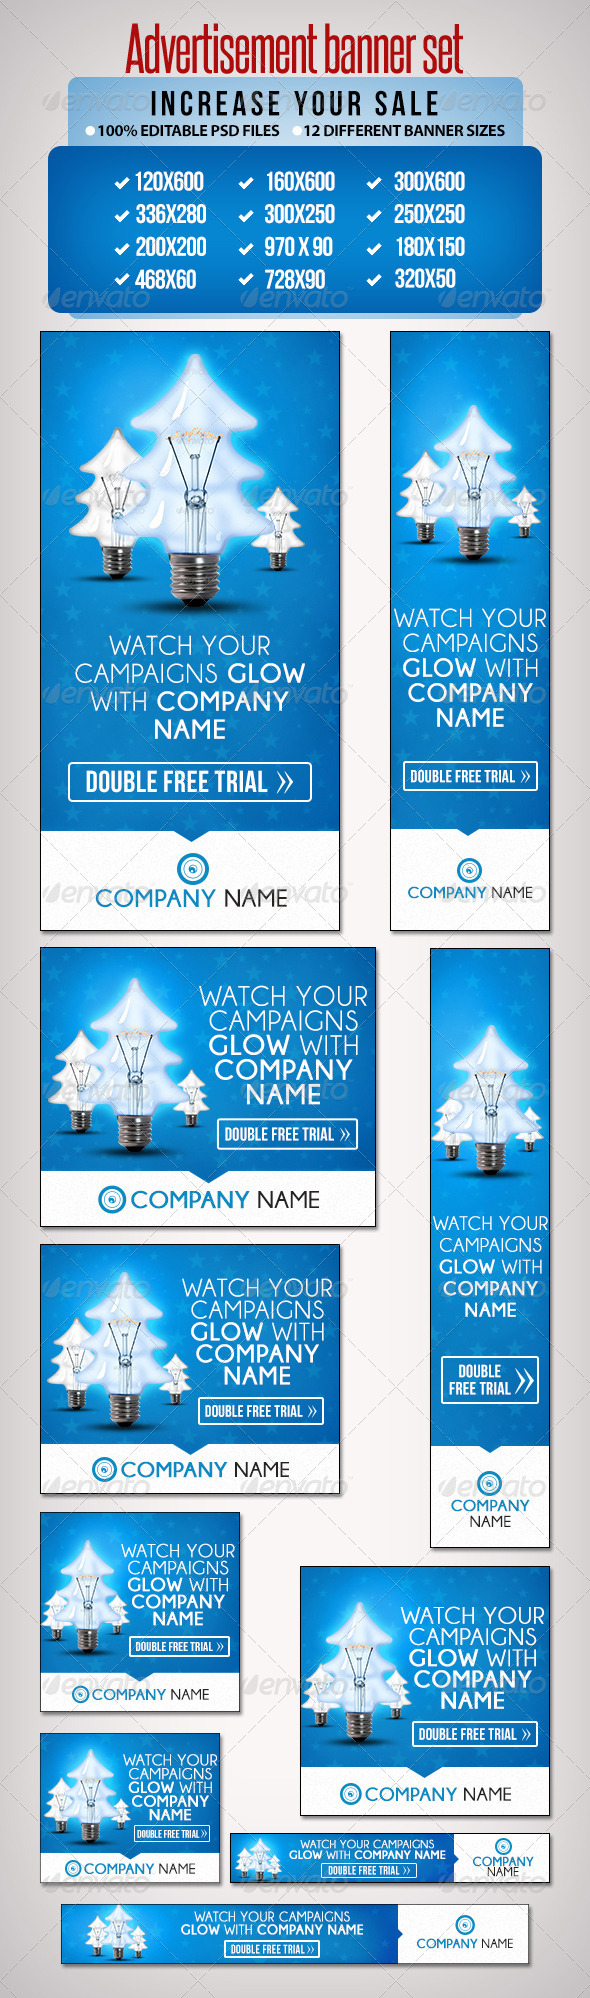 GraphicRiver Advertisement Banner Set 1 12 Sizes 6440684